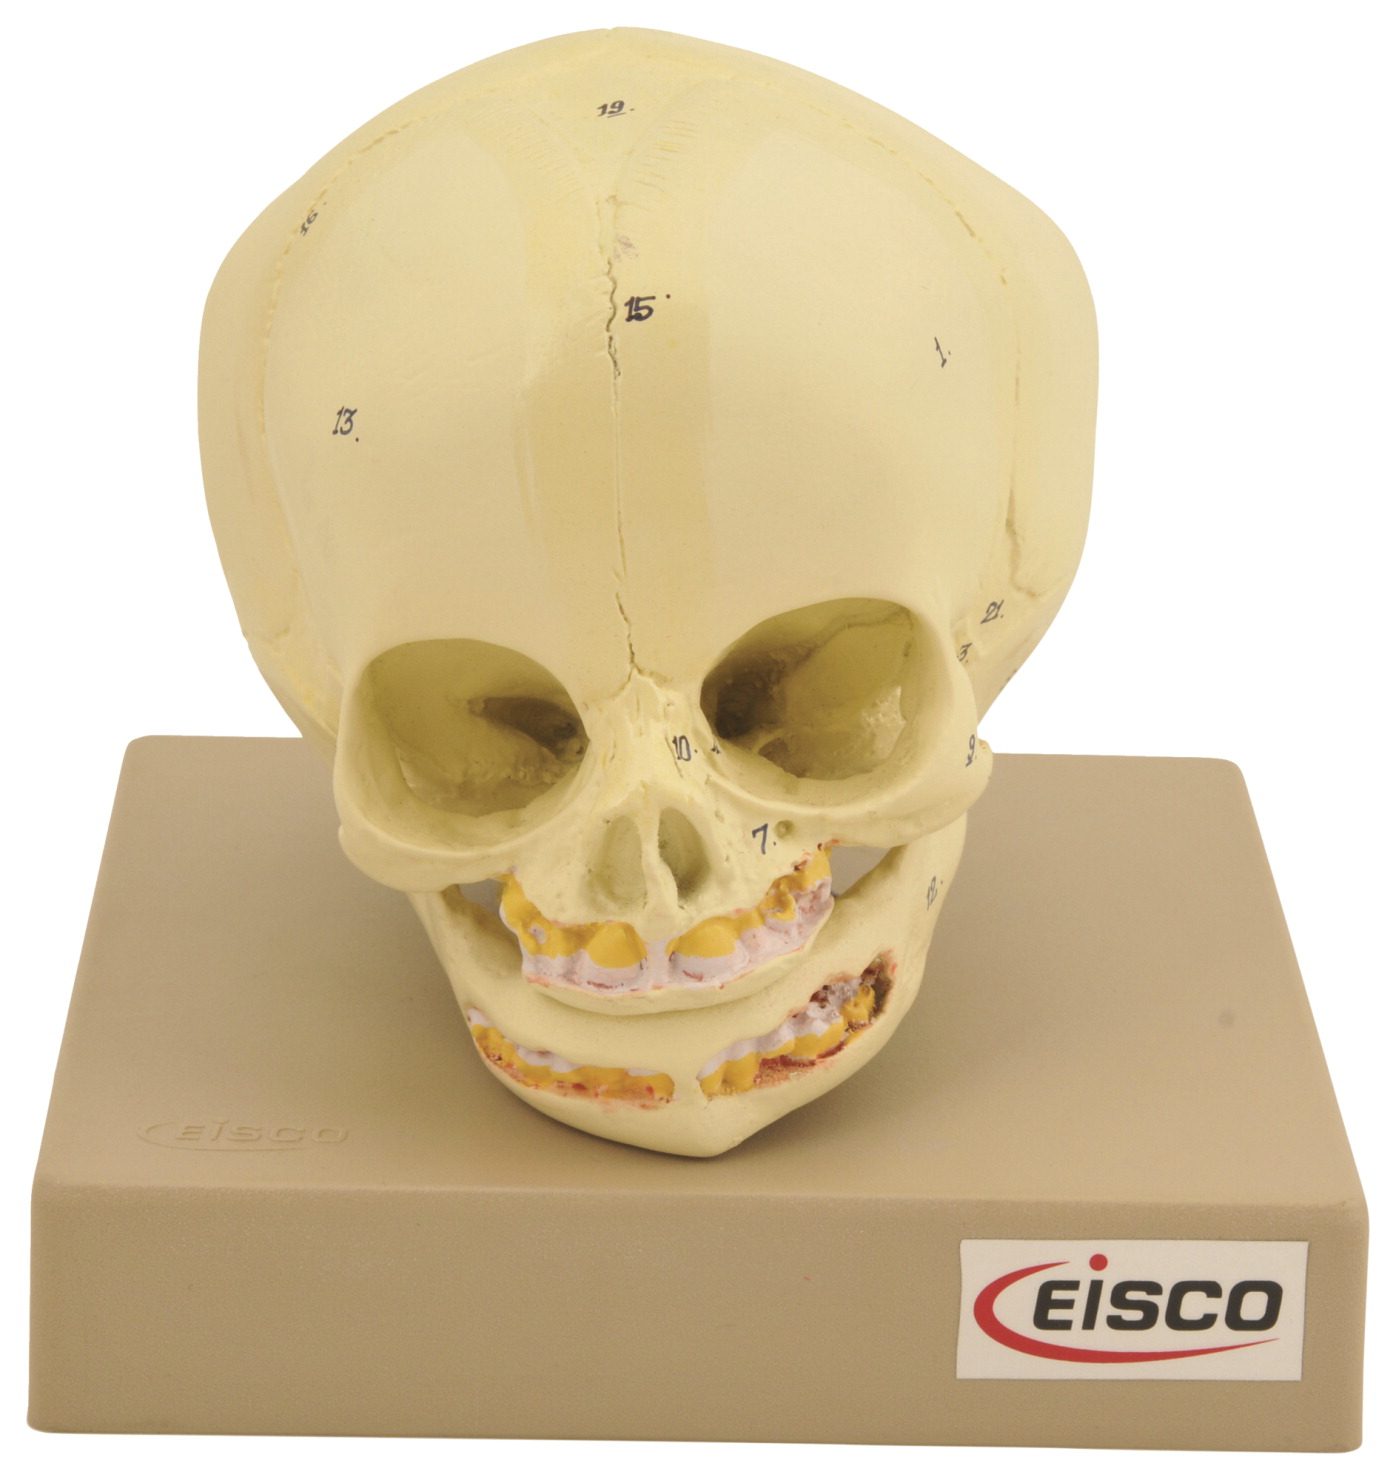 EISCO Artificial Infant Skull Model